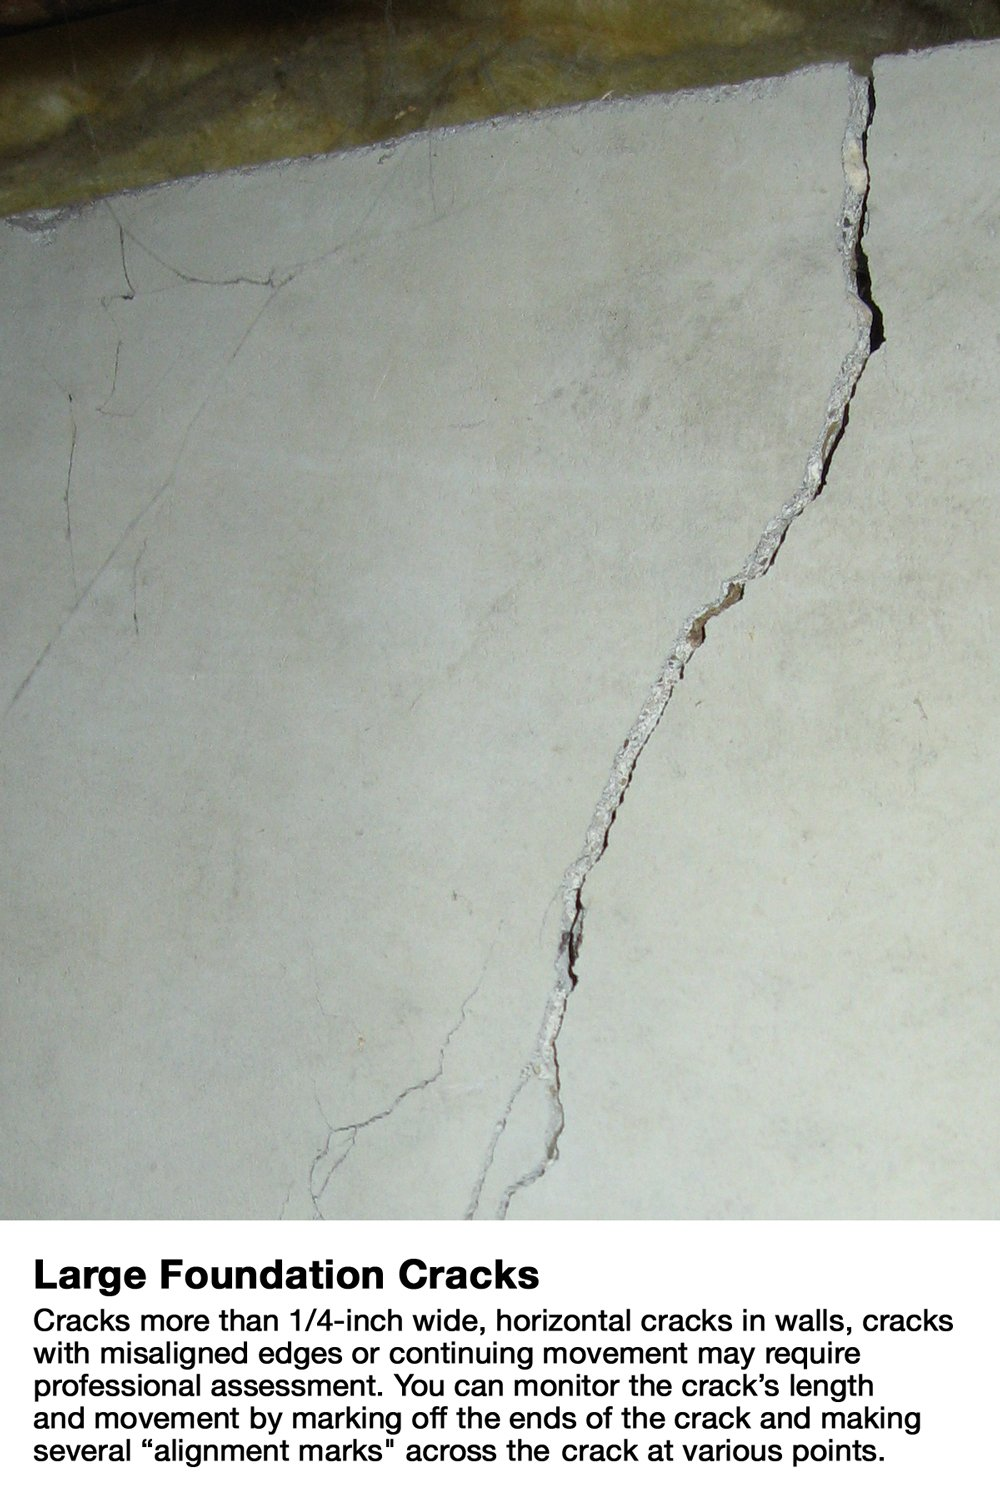 DIY Concrete Foundation Crack Repair Kit (10 ft) - The Homeowner's Solution to Fixing Basement Wall Cracks Like The Pros! by RadonSeal